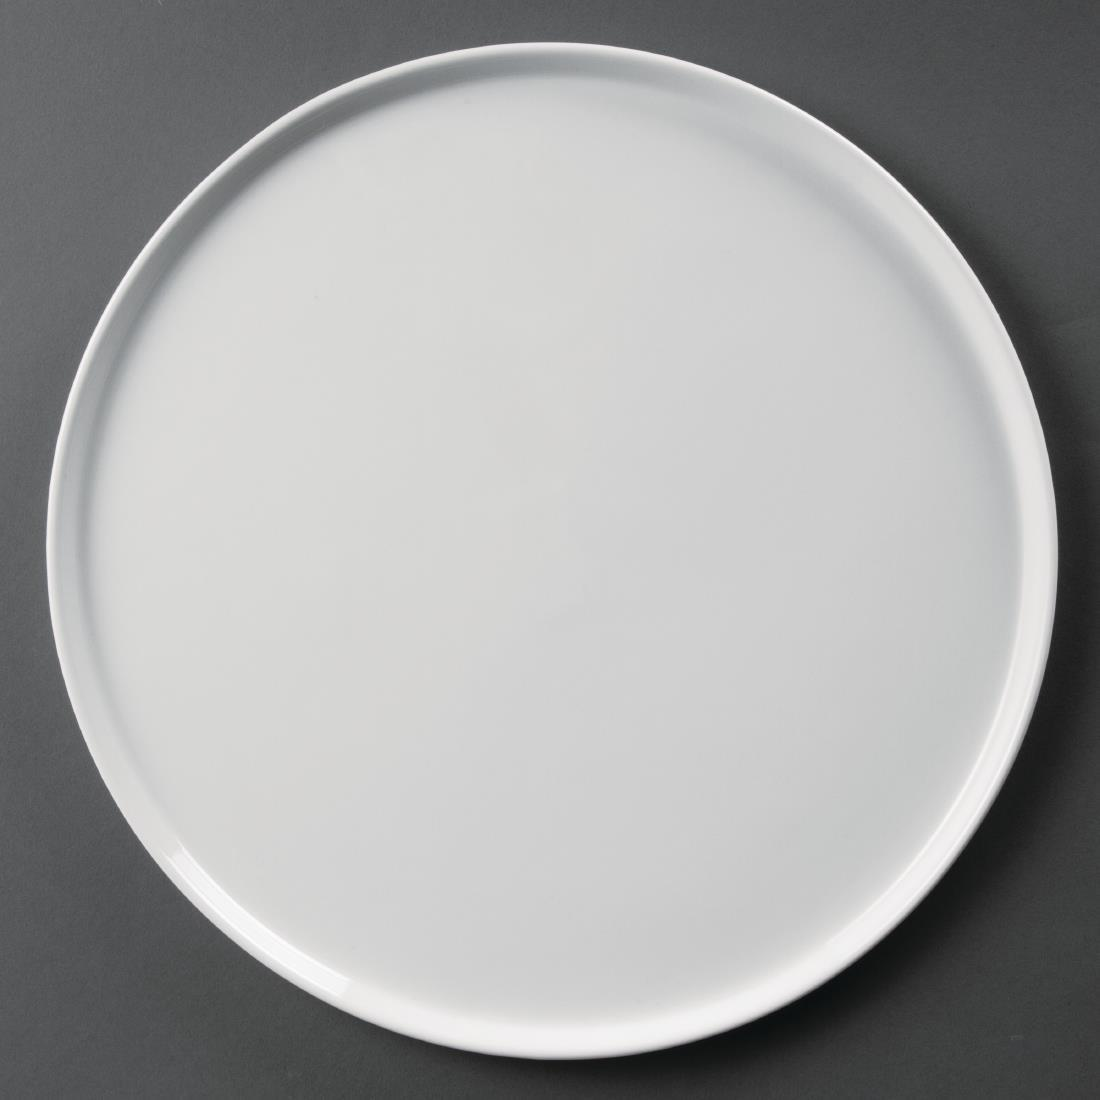 Olympia Whiteware Pizza Plates 330mm